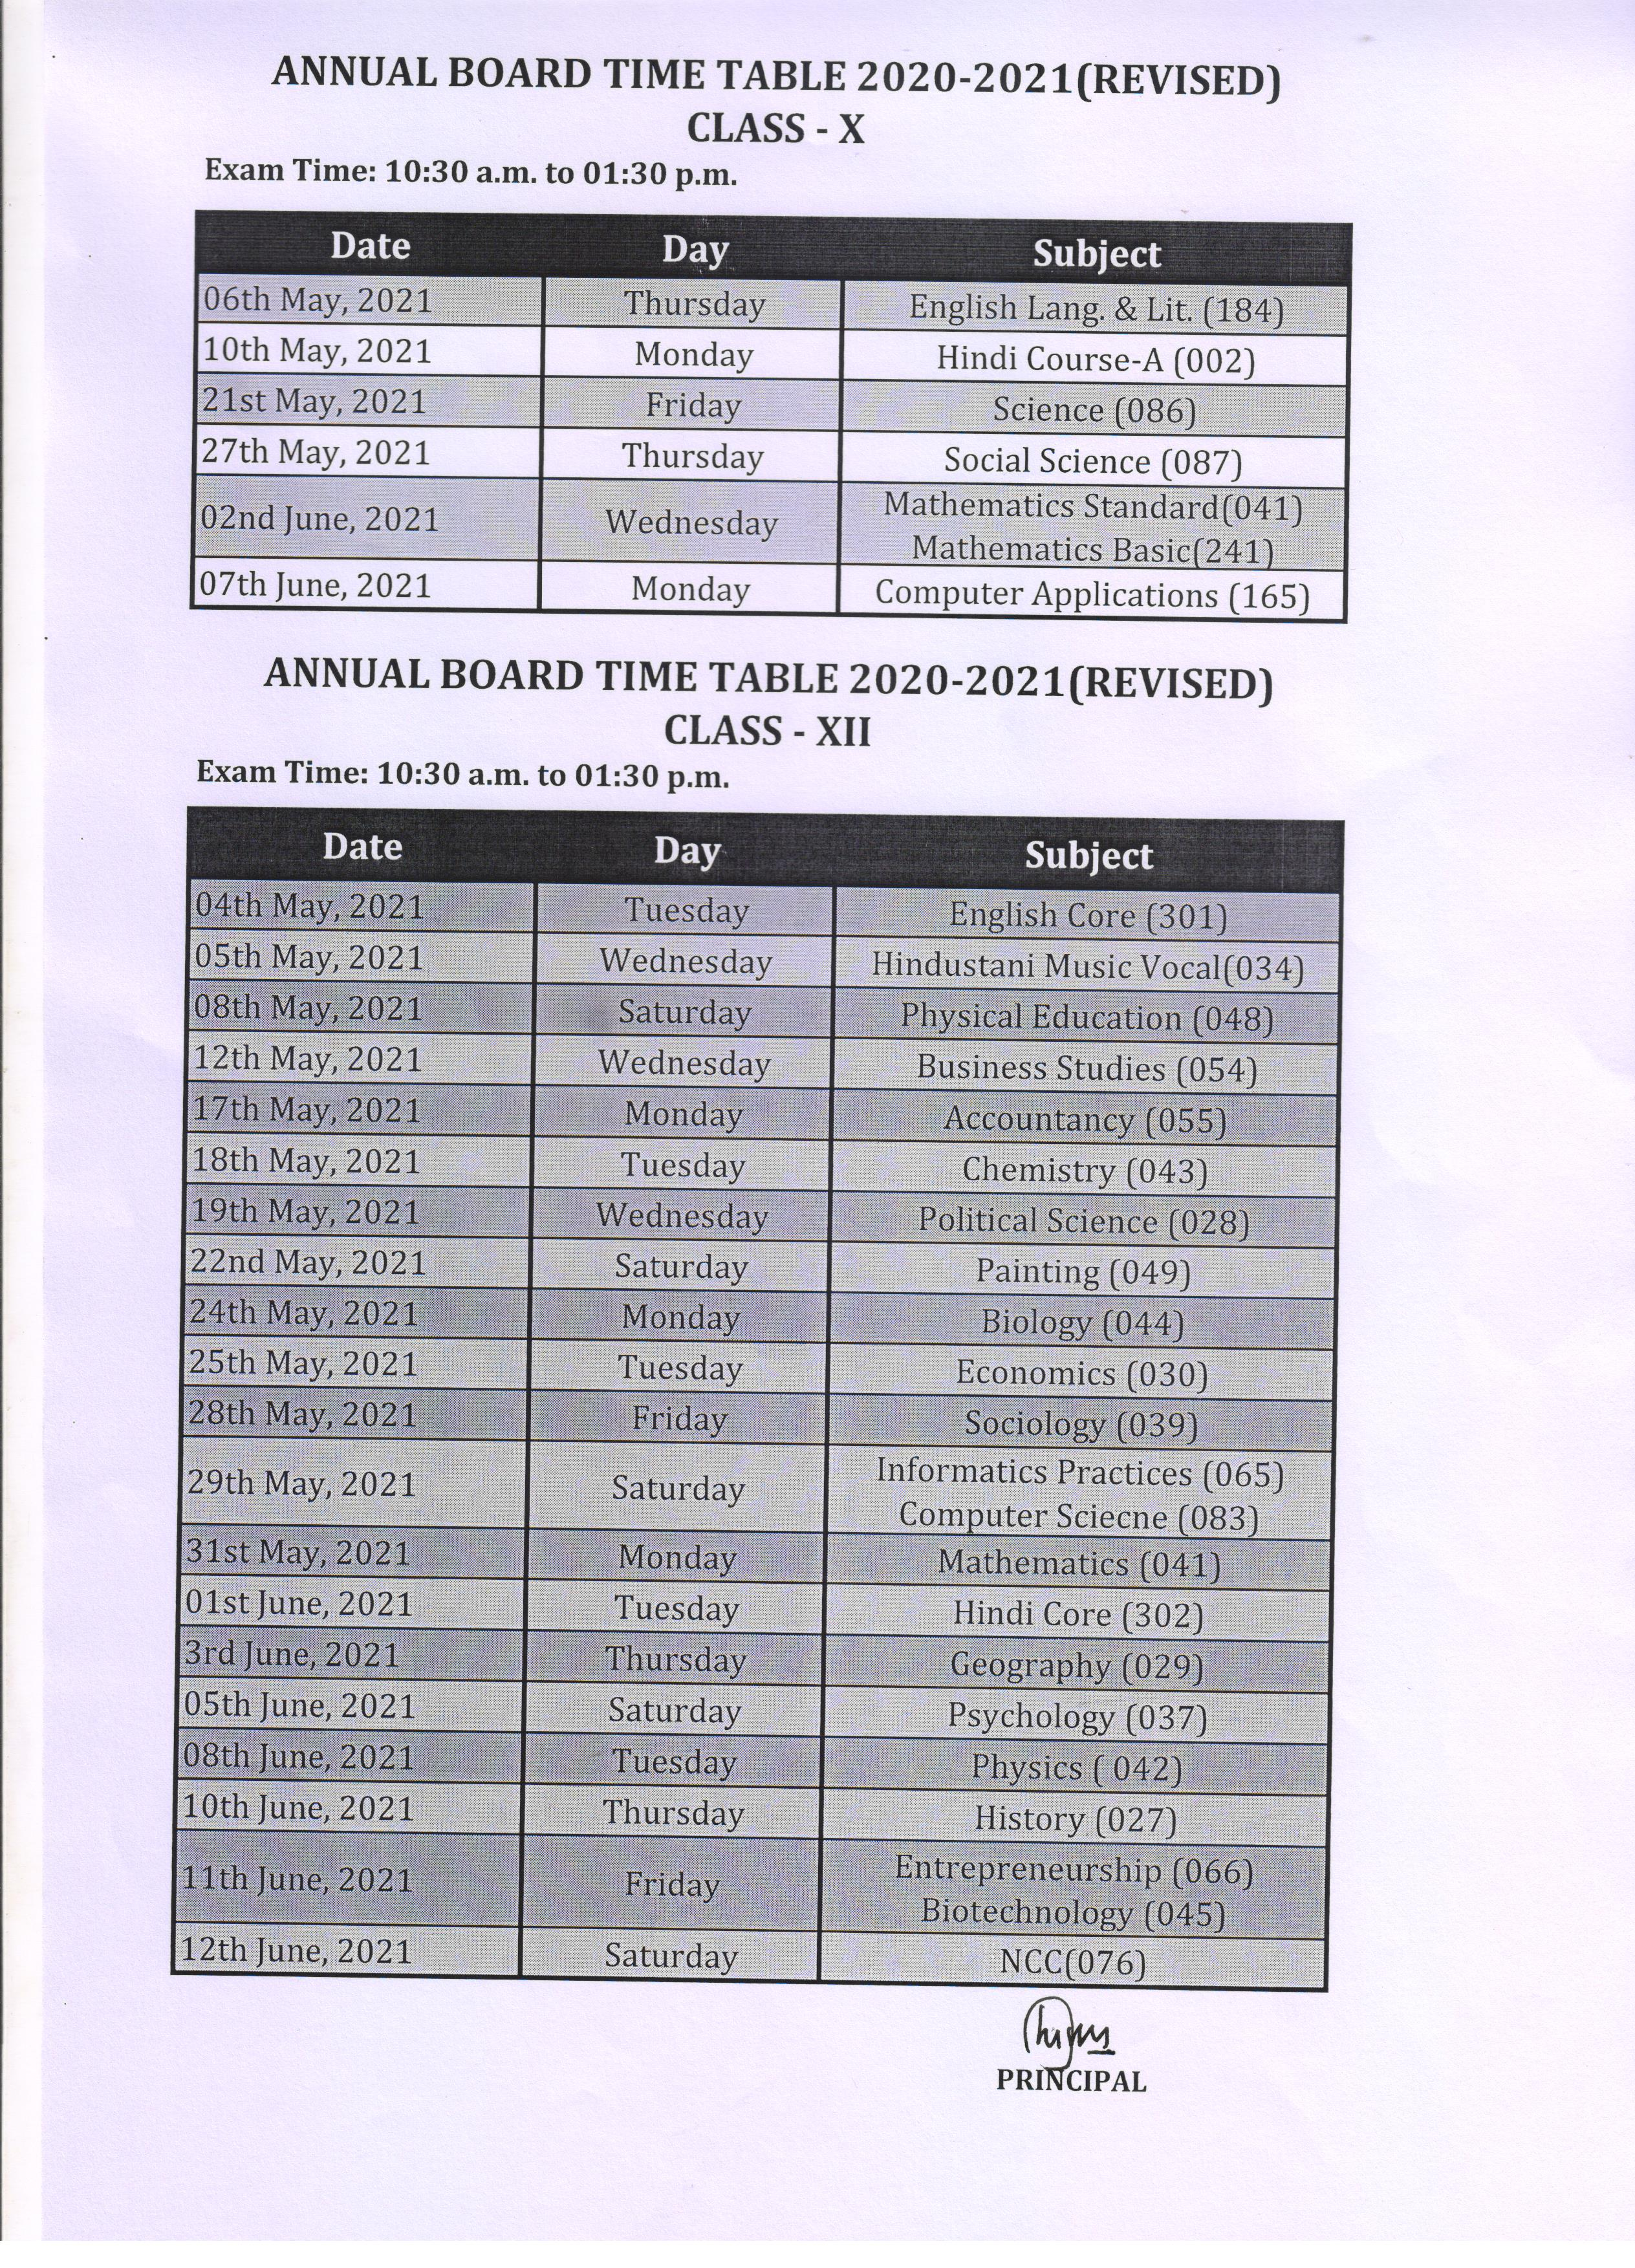 Annual Time Table